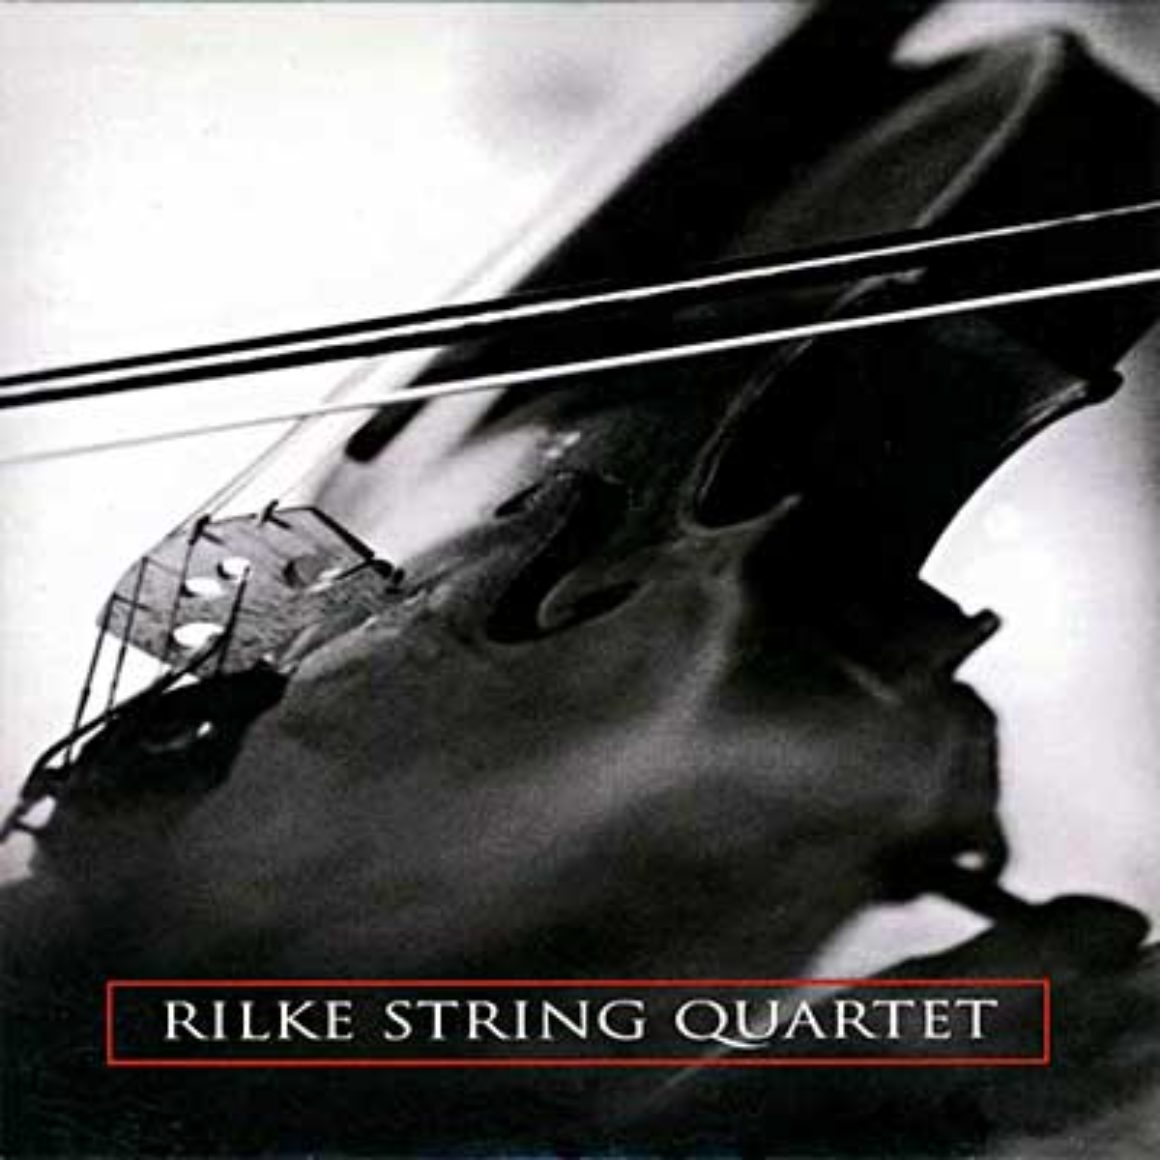 Rilke String Quartet